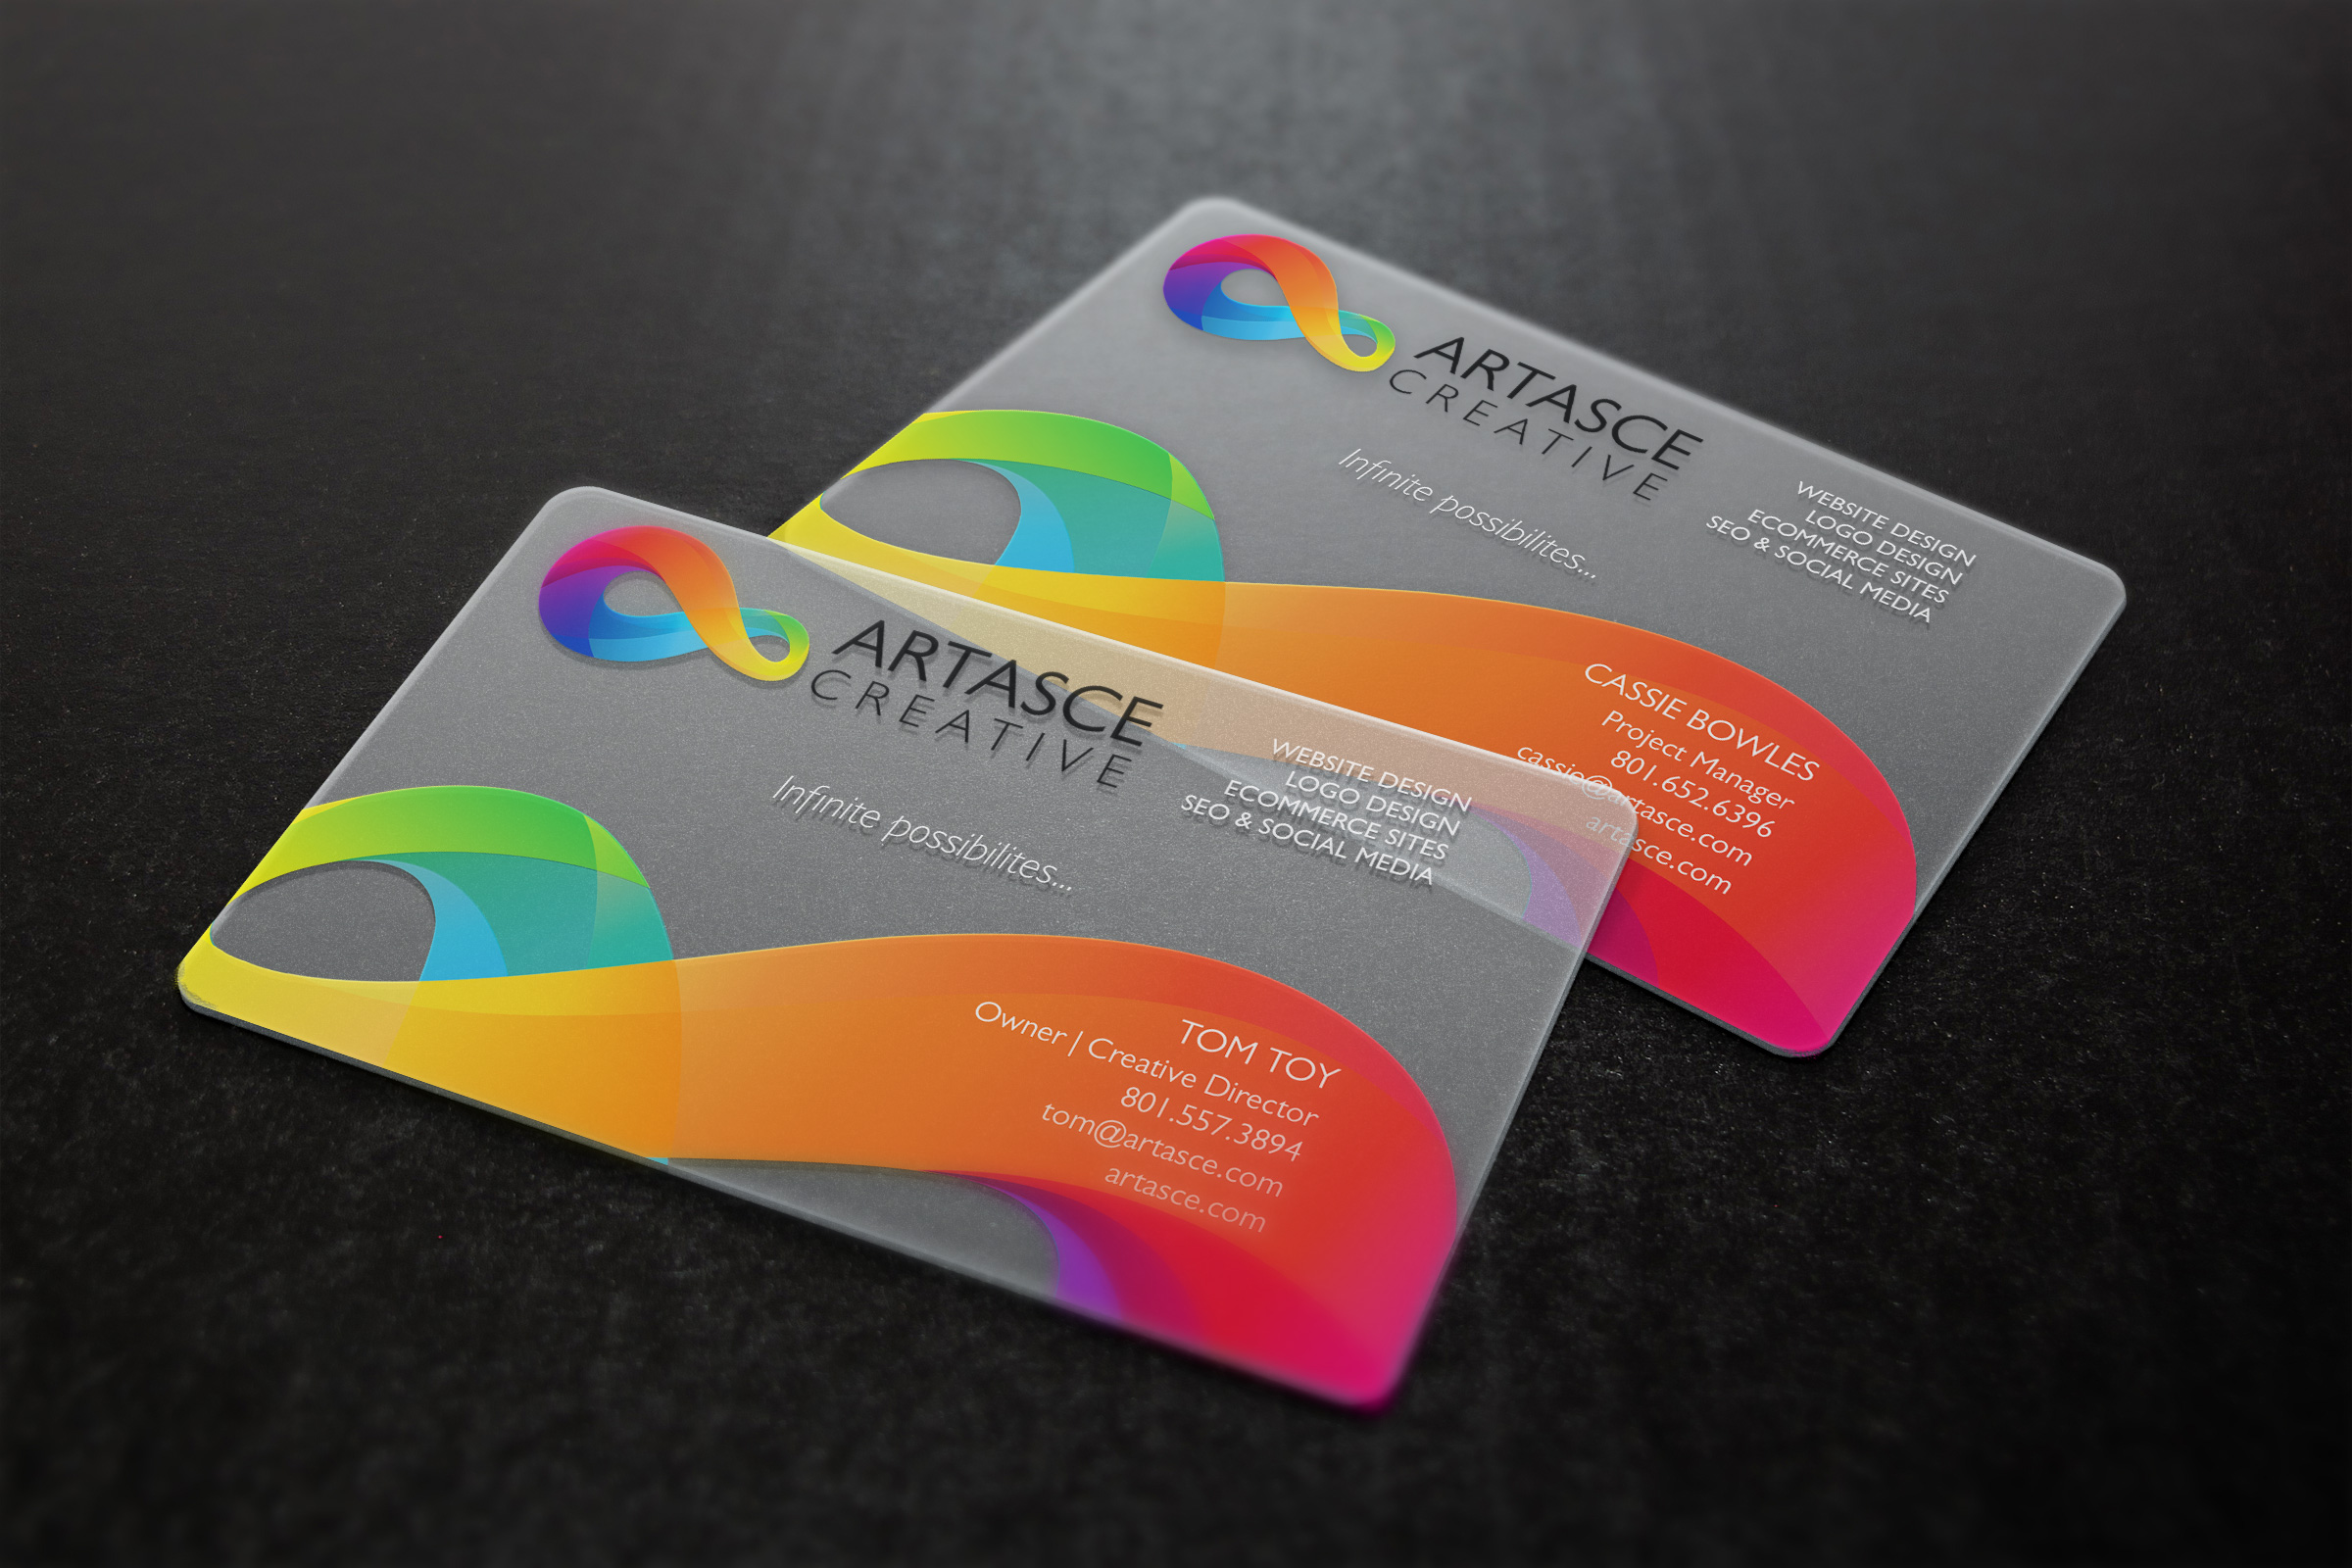 Clear plastic business cards artasce creative clear plastic business cards colourmoves Gallery